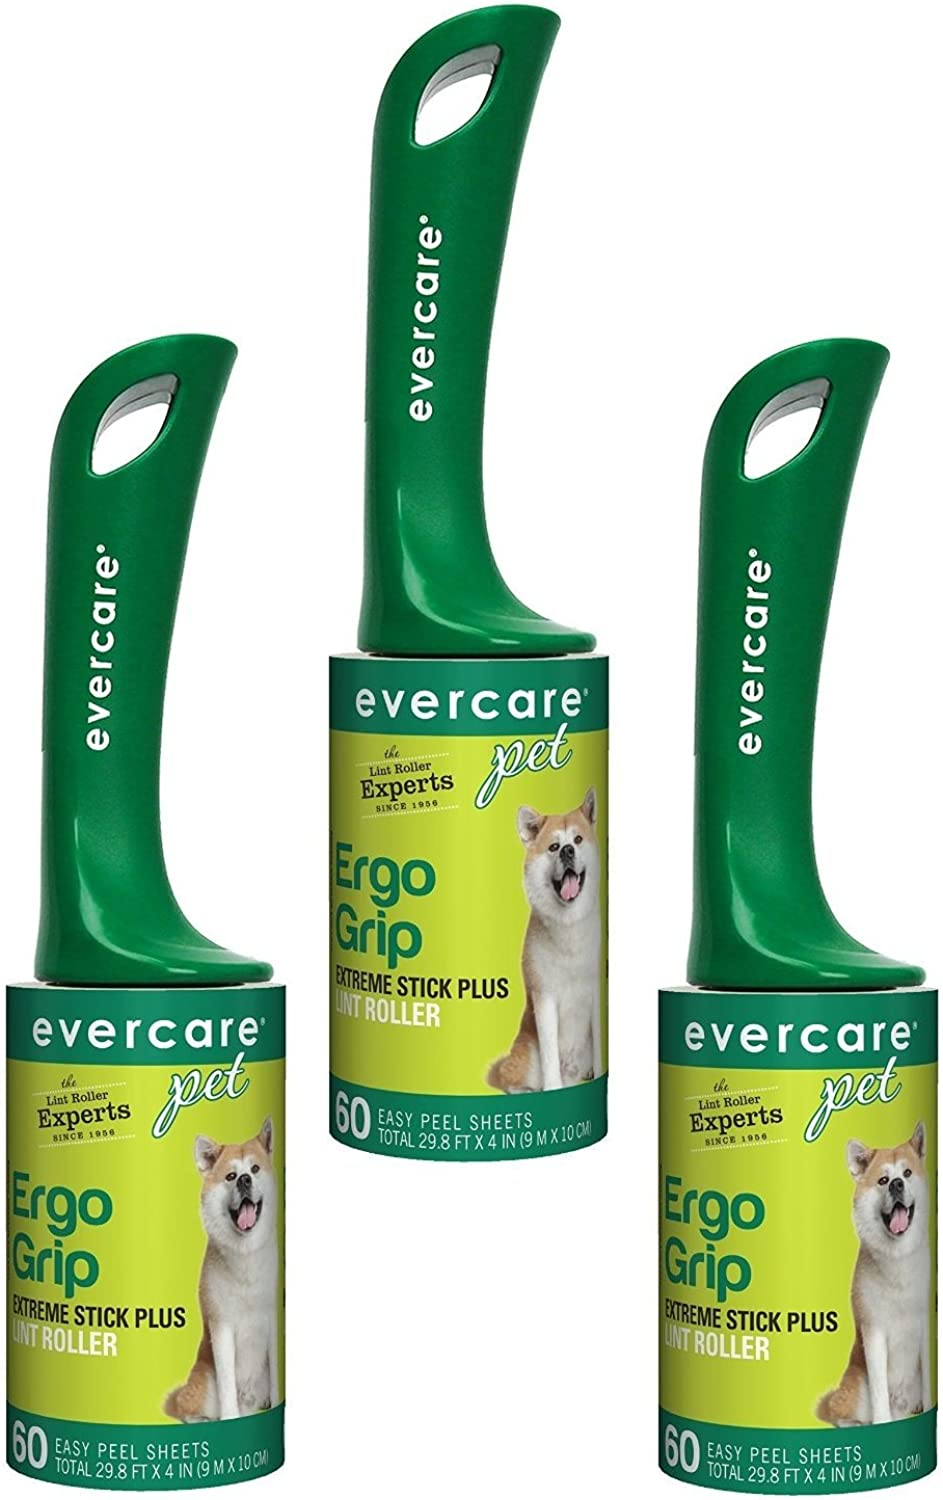 Evercare ExtraSticky Pet Hair Rollers (3 Pack)